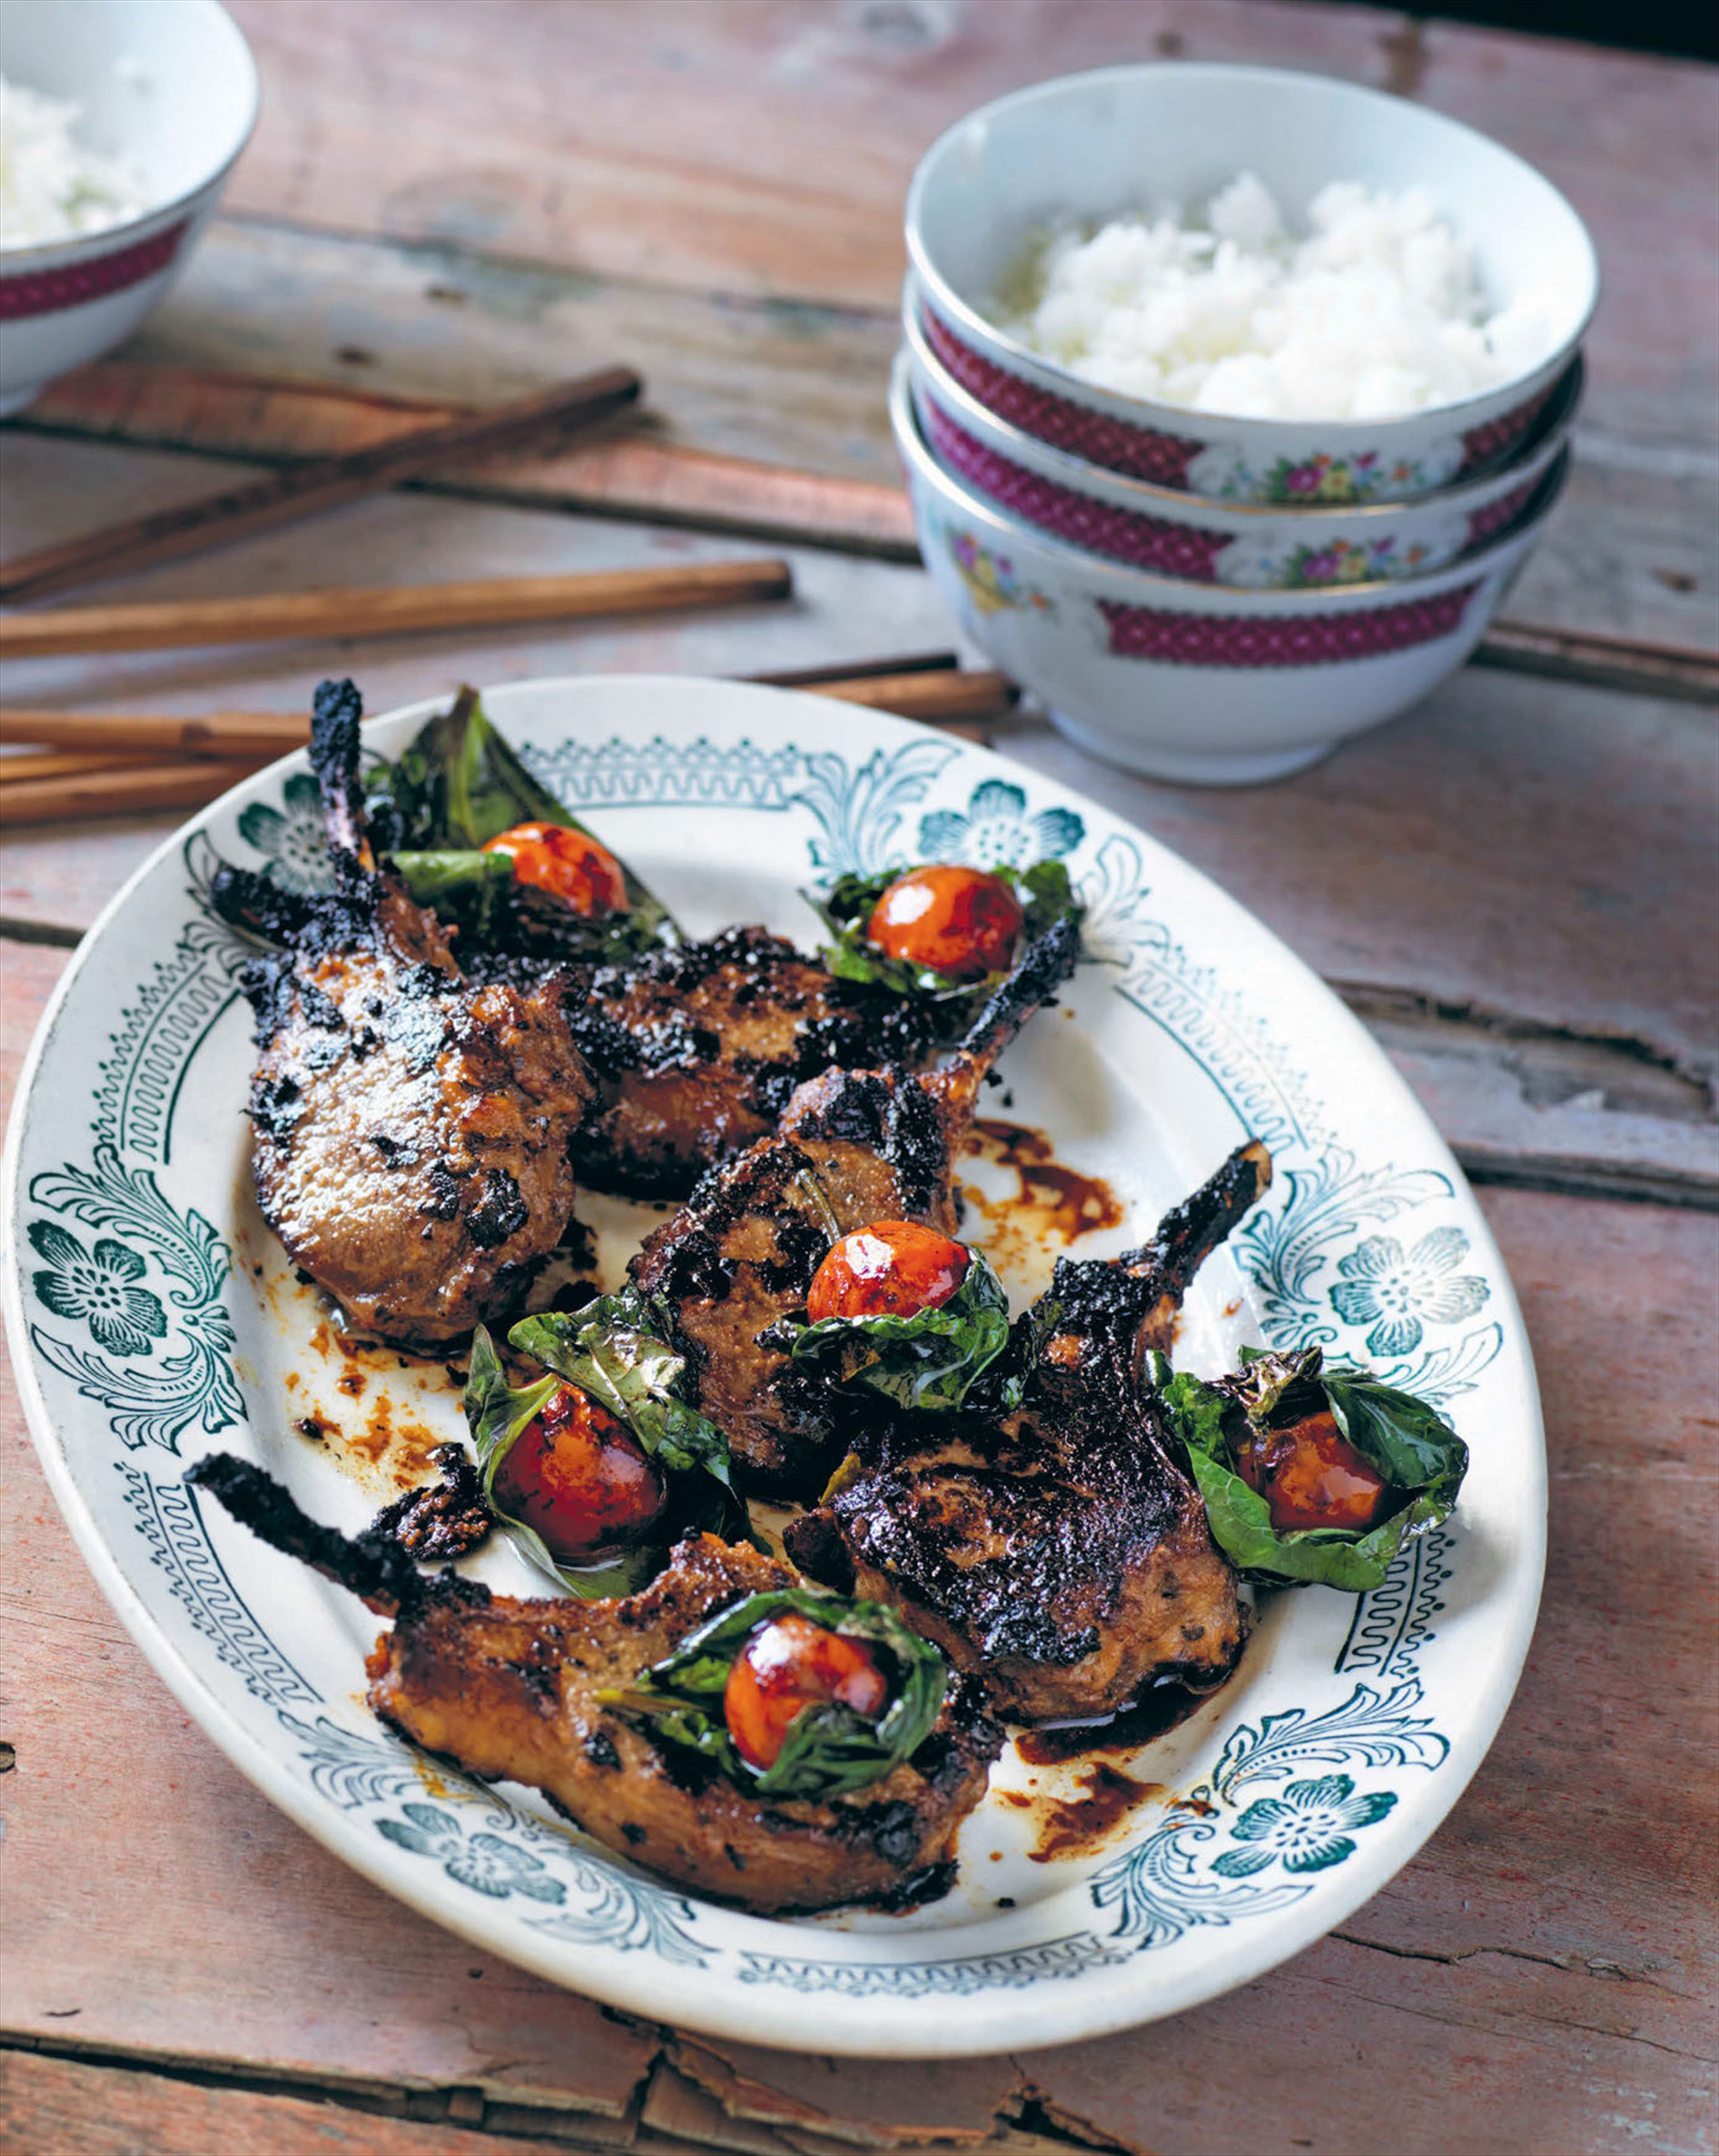 Lamb cutlets cooked in Vietnamese miso